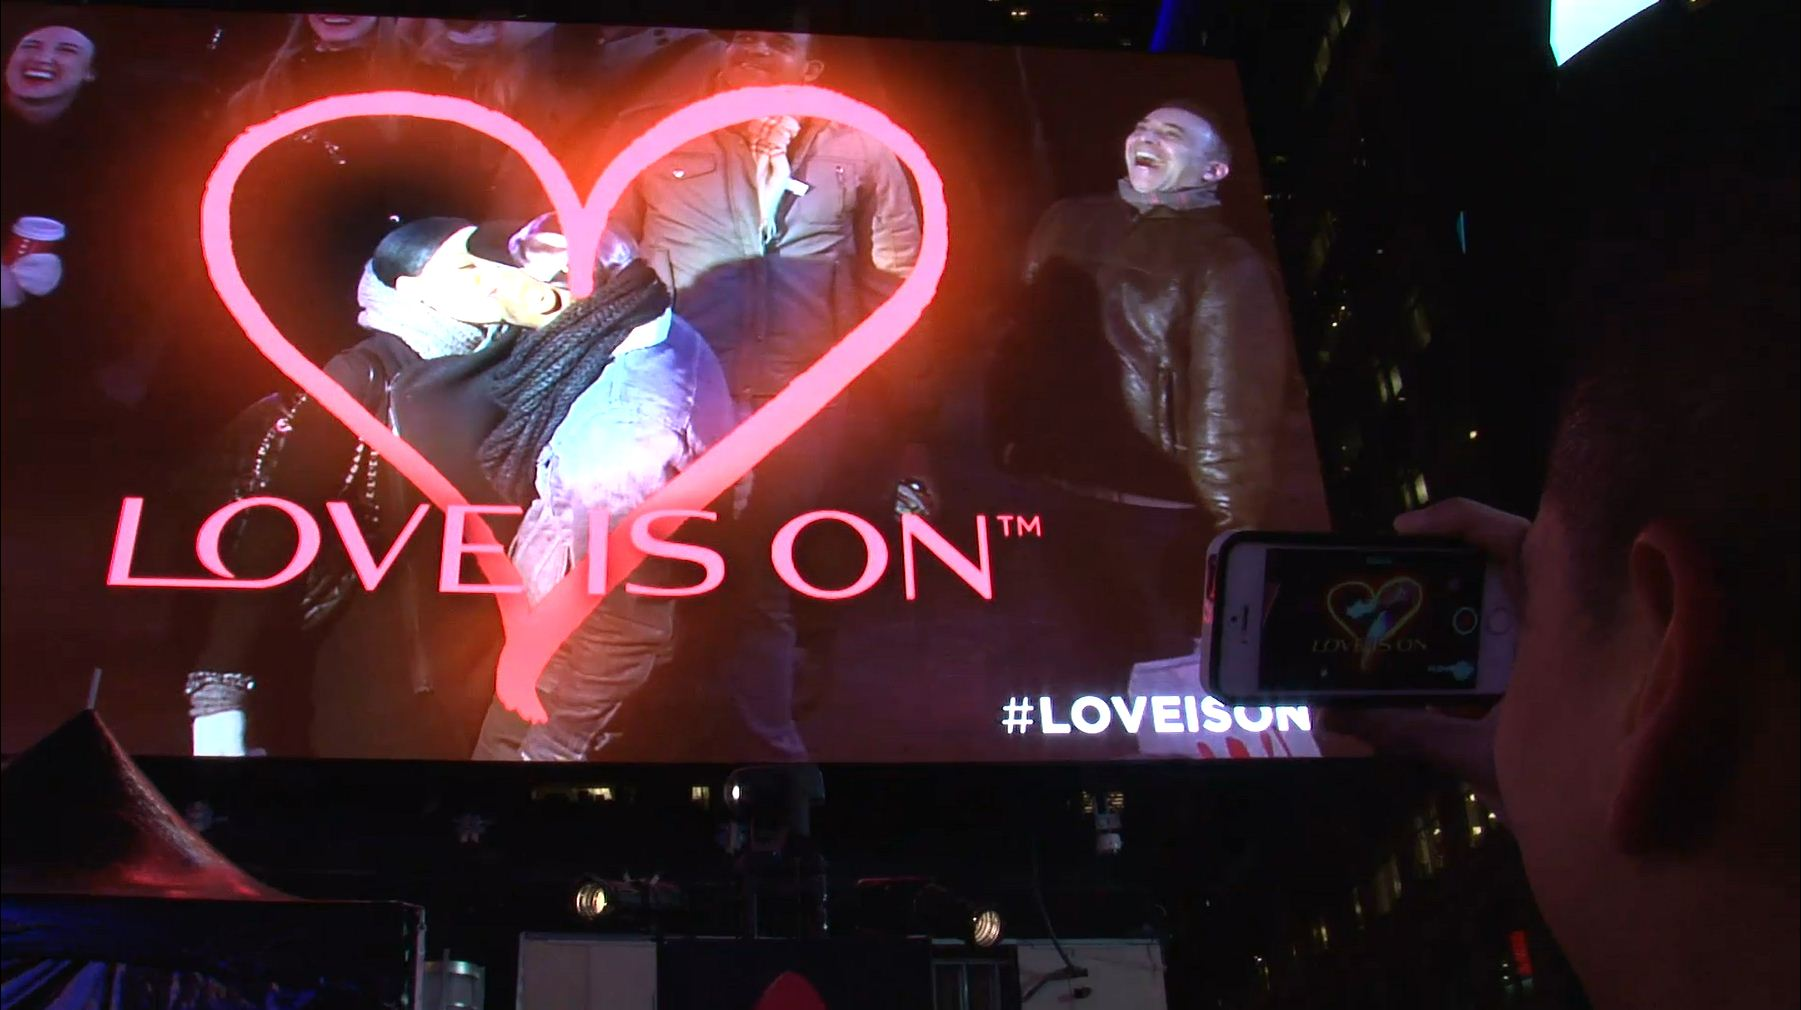 Revlon repositions brand with love | Marketing Interactive